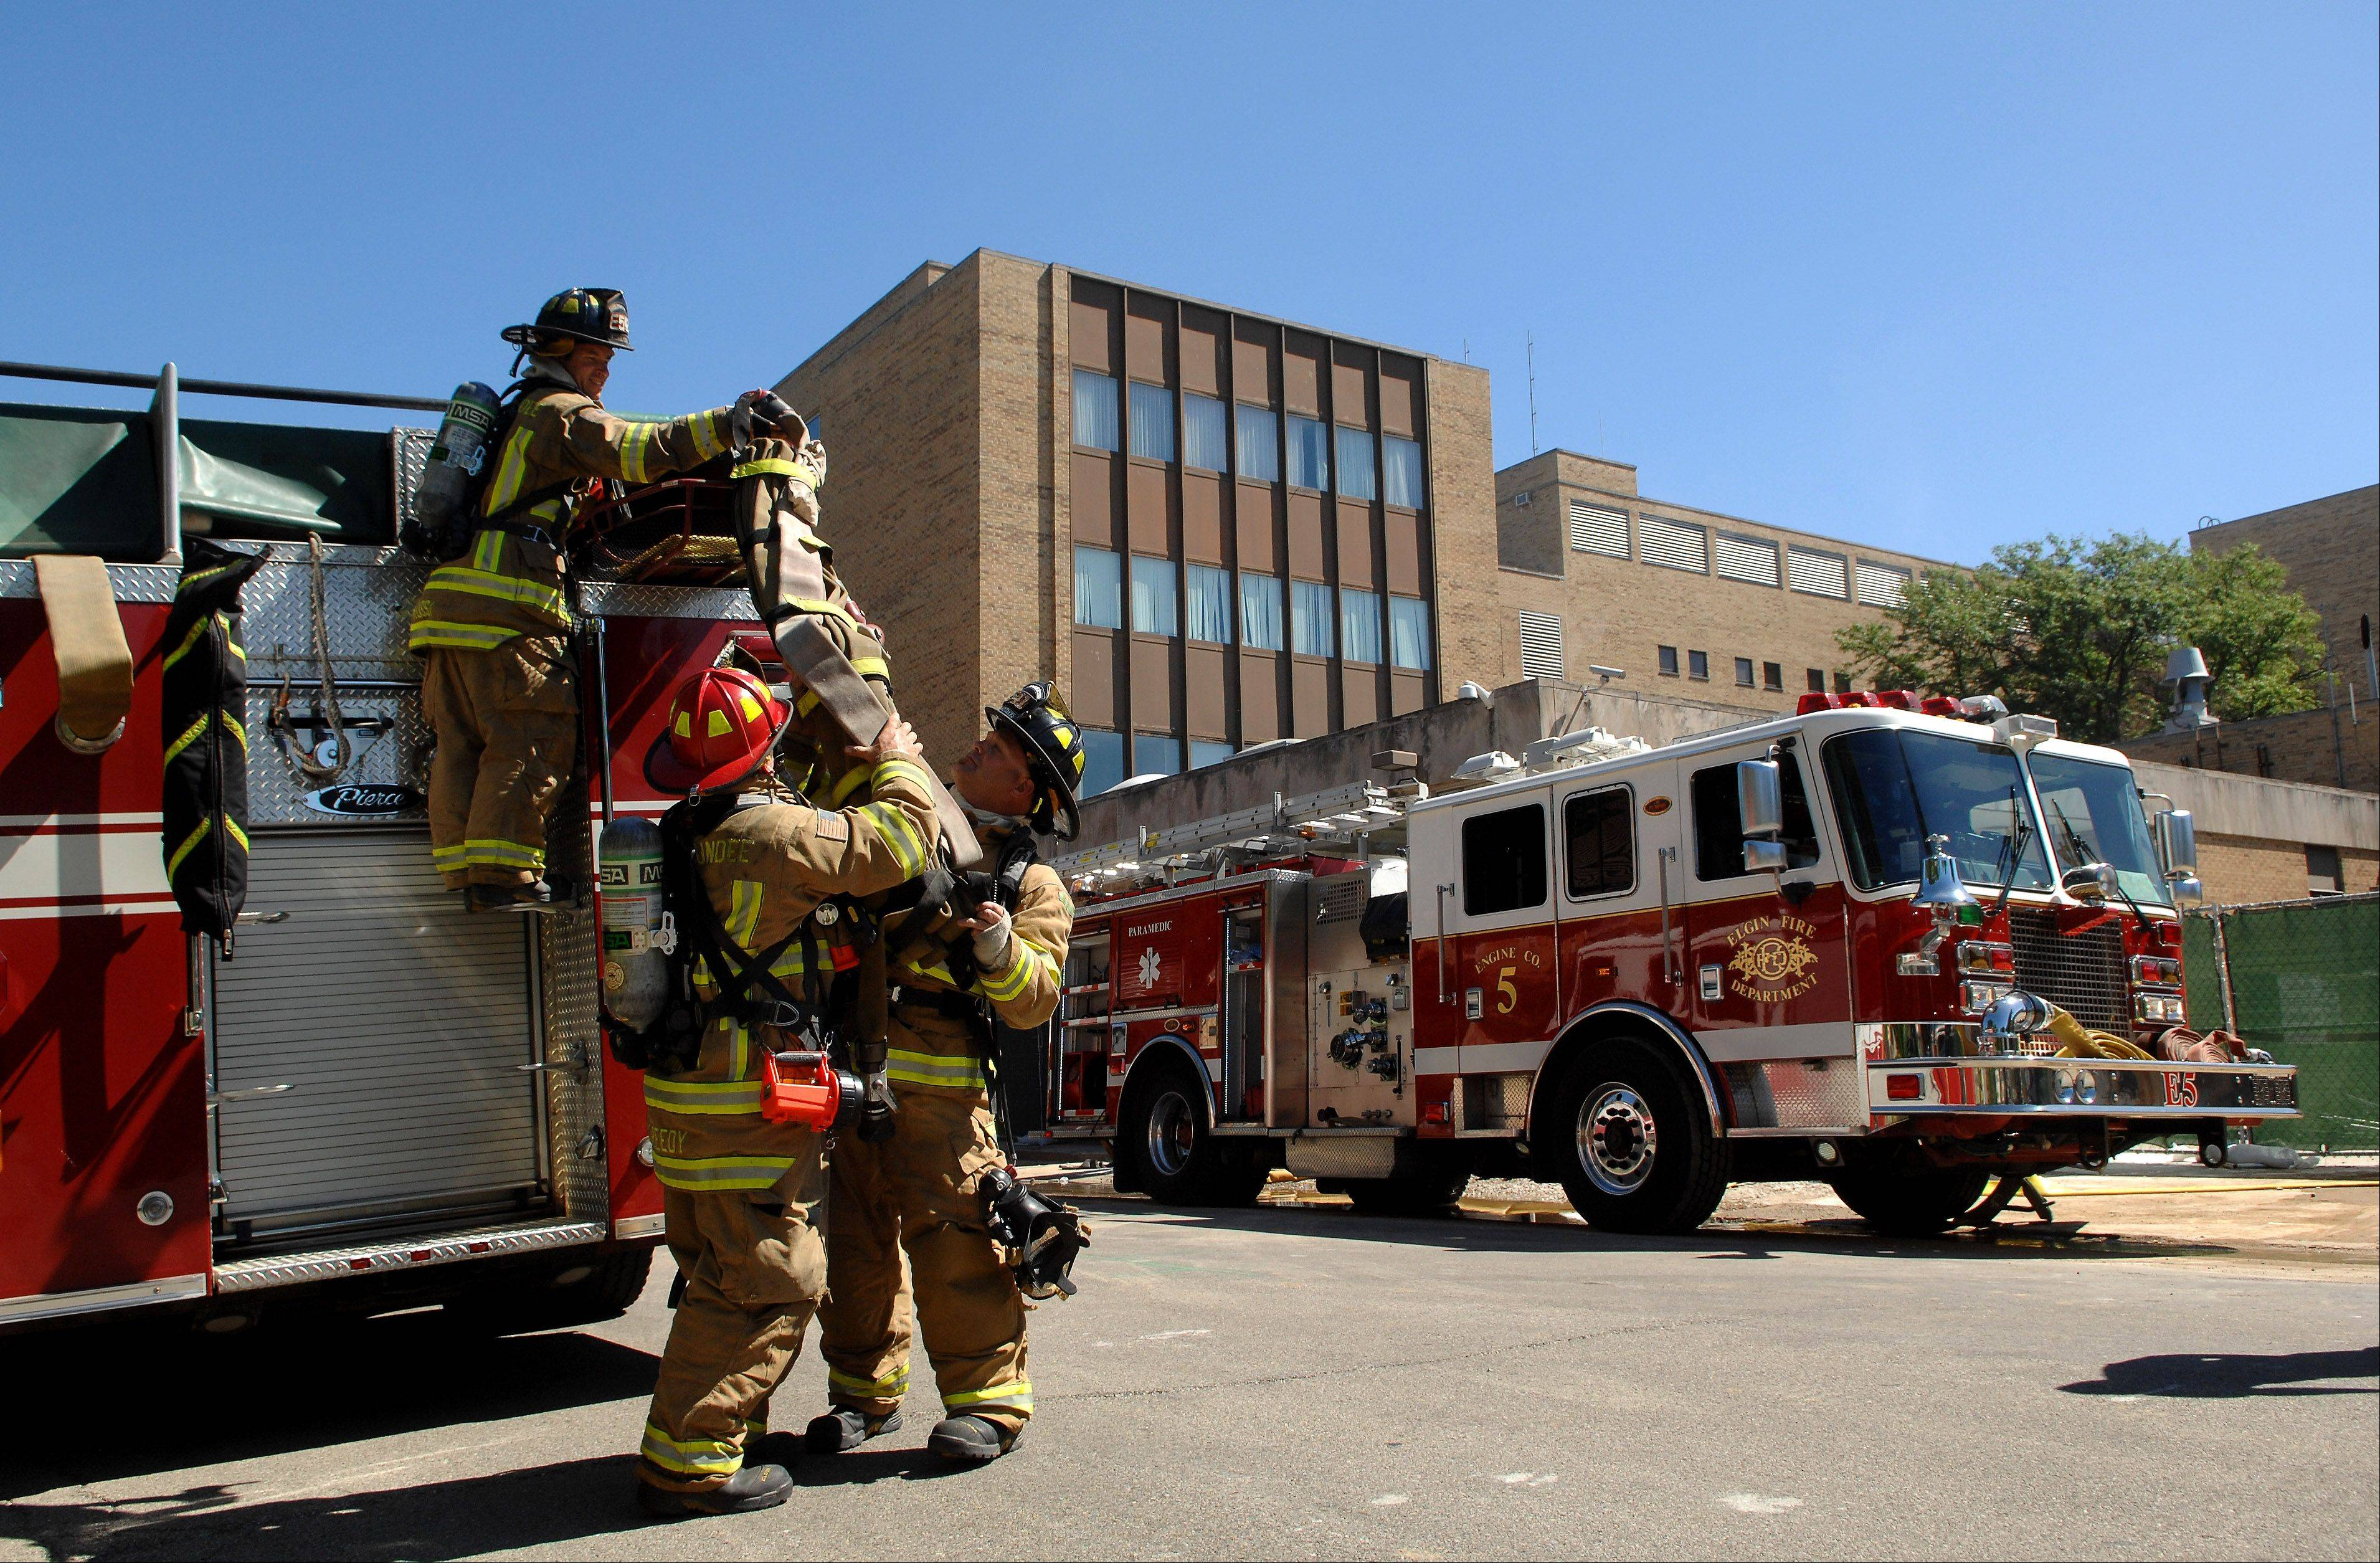 Rutland-Dundee firefighters unload a hose from their engine Monday at the old Sherman Hospital on Elgin's east side. More than 300 firefighters from the area are participating in high-rise training this week, conducted by the Elgin Fire Department. Training continues through Friday.